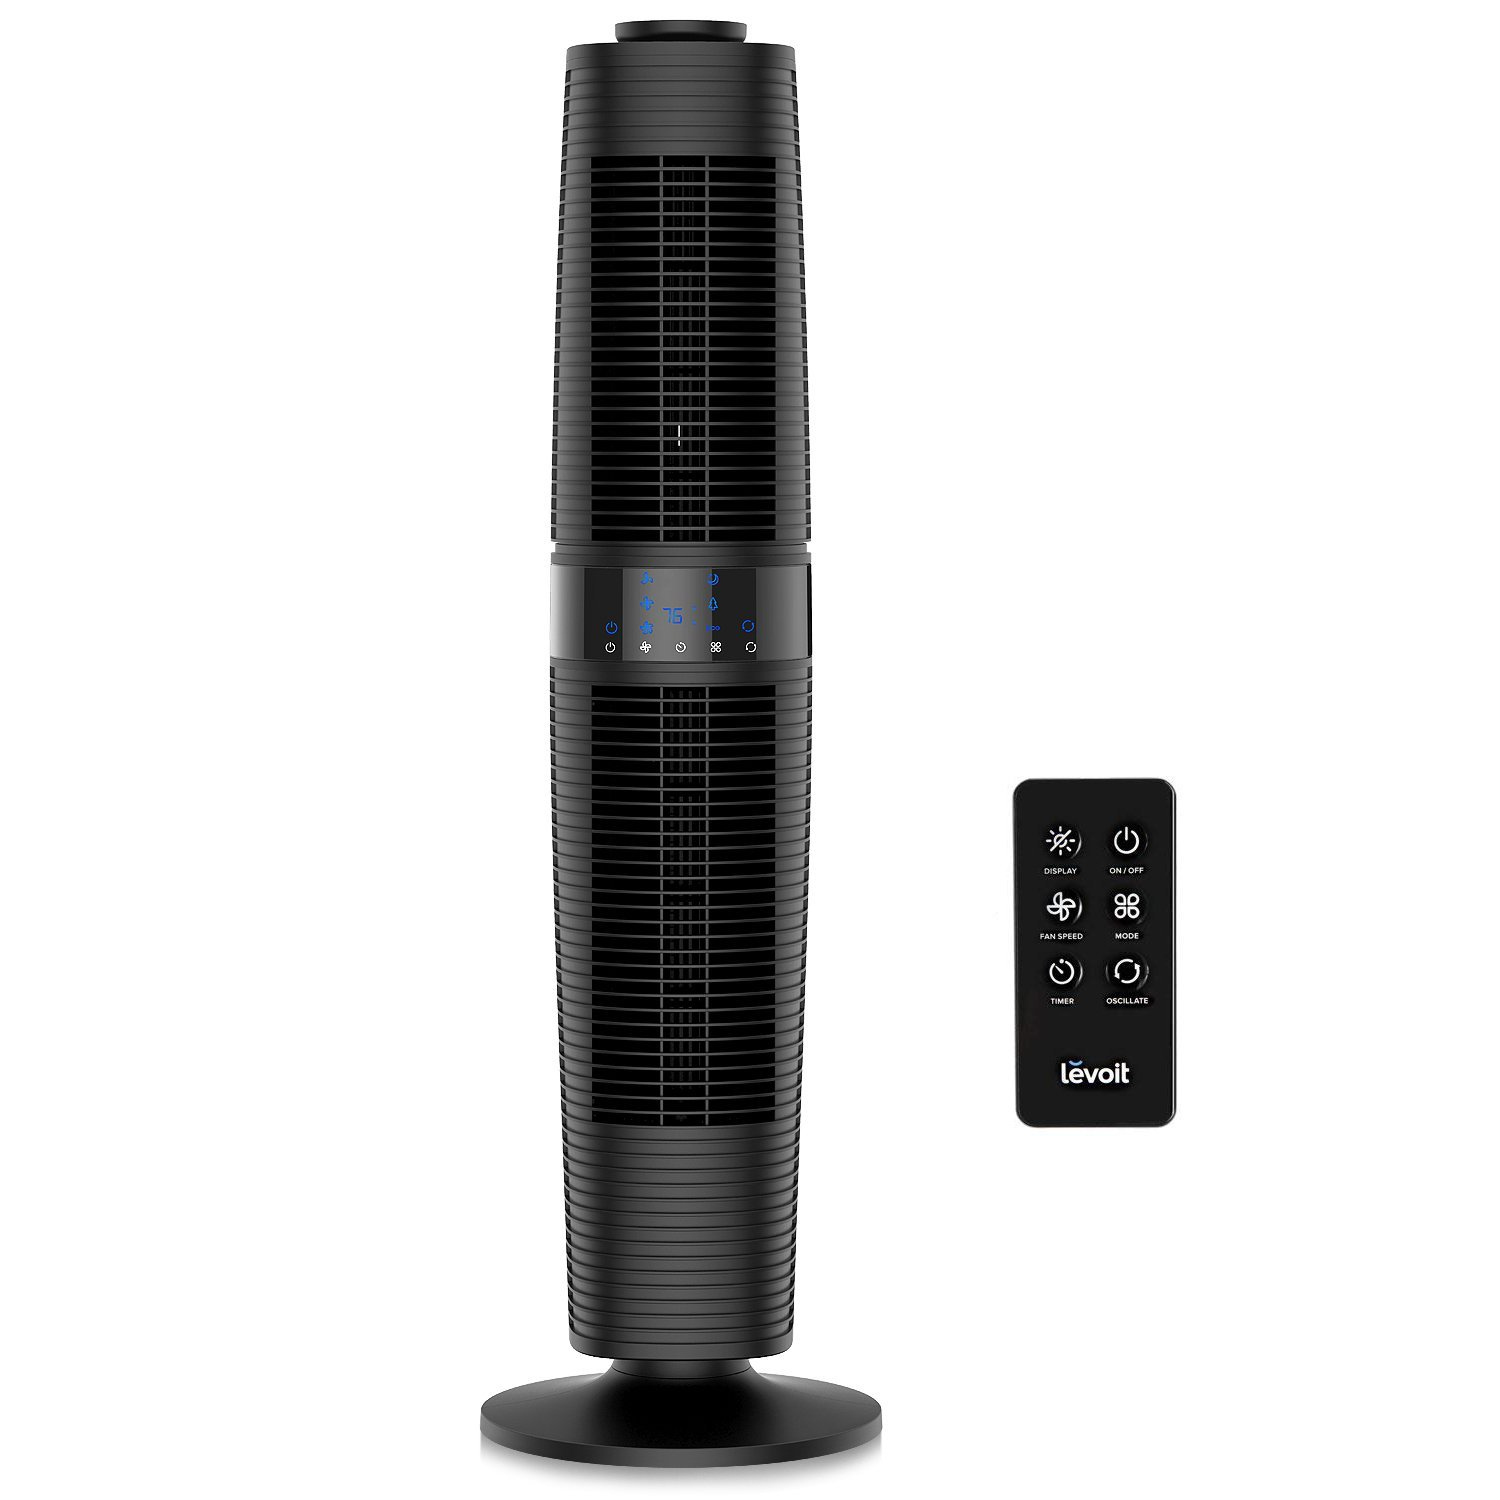 LEVOIT LV373 Tower Fan Oscillating with Remote Control, Standing Floor with 3 Speeds and Modes, 360° Manual Oscillation for Cooling, Automatic Shutoff Timer, Quiet and Energy Saving, 37 Inch, Black by LEVOIT